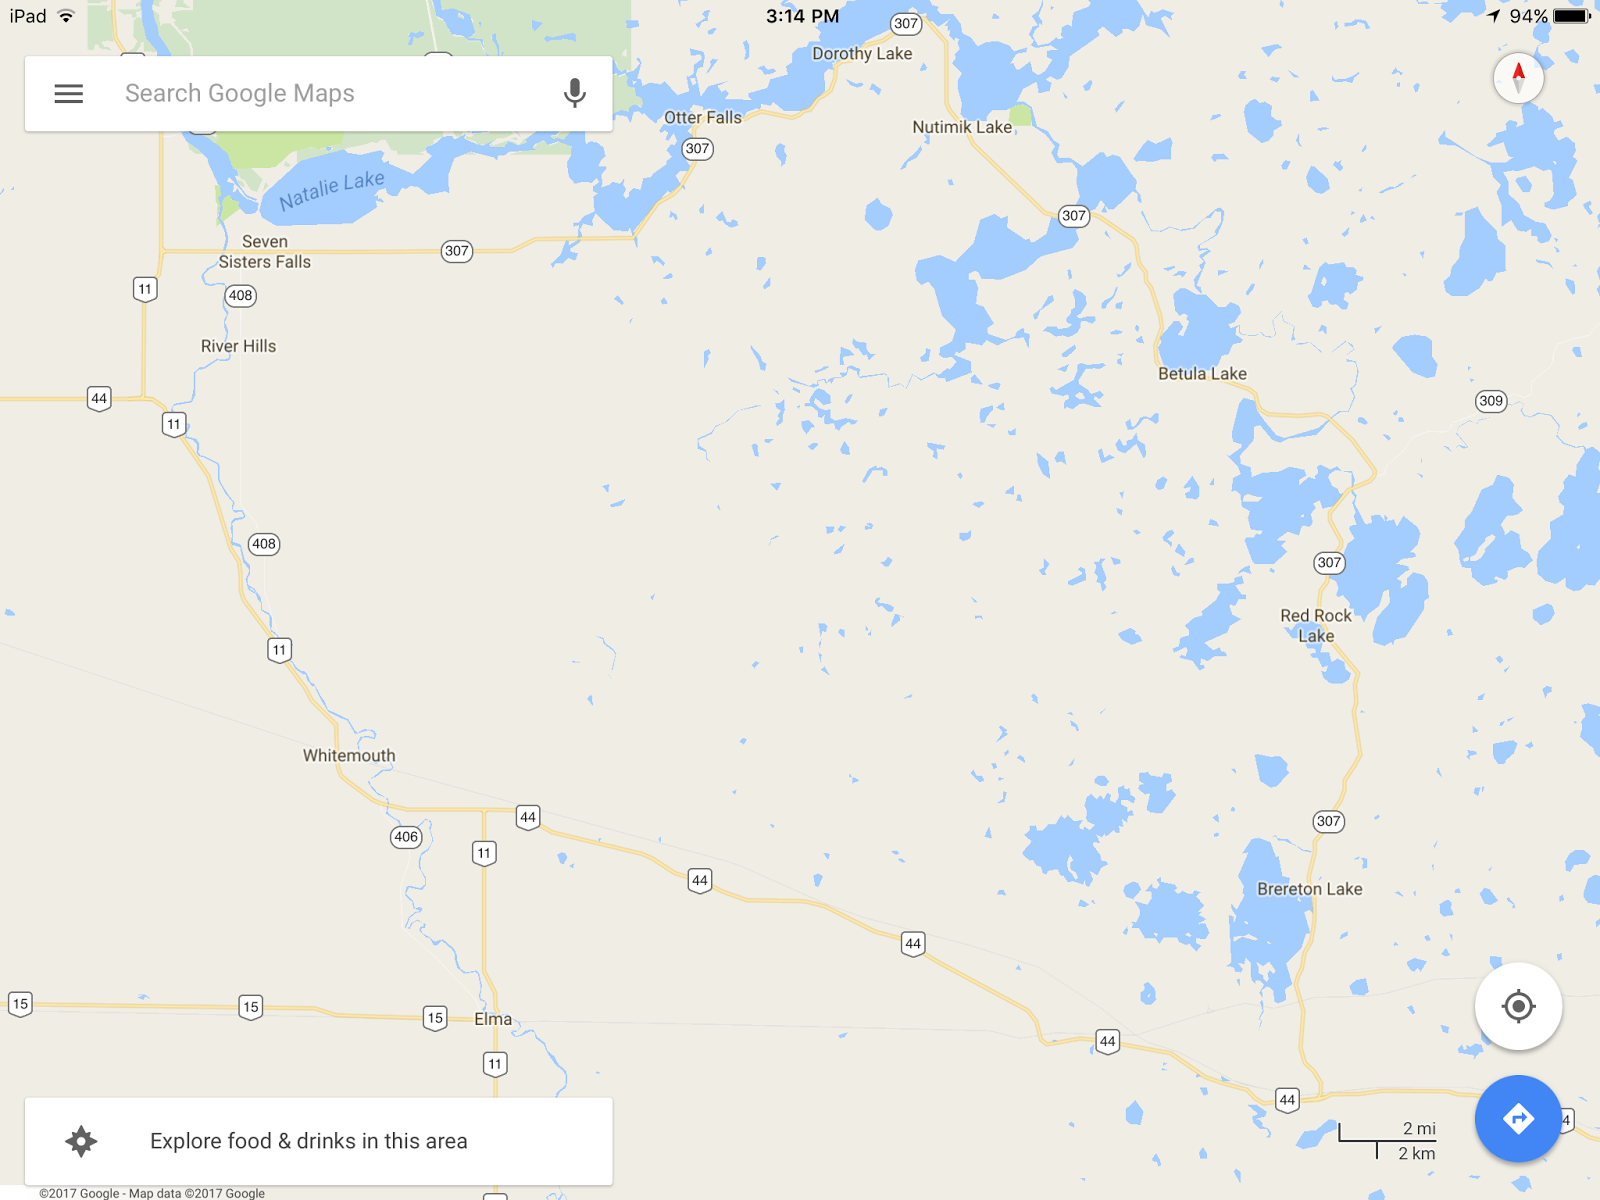 Update Street View Imagery in the Whiteshell Provincial Park